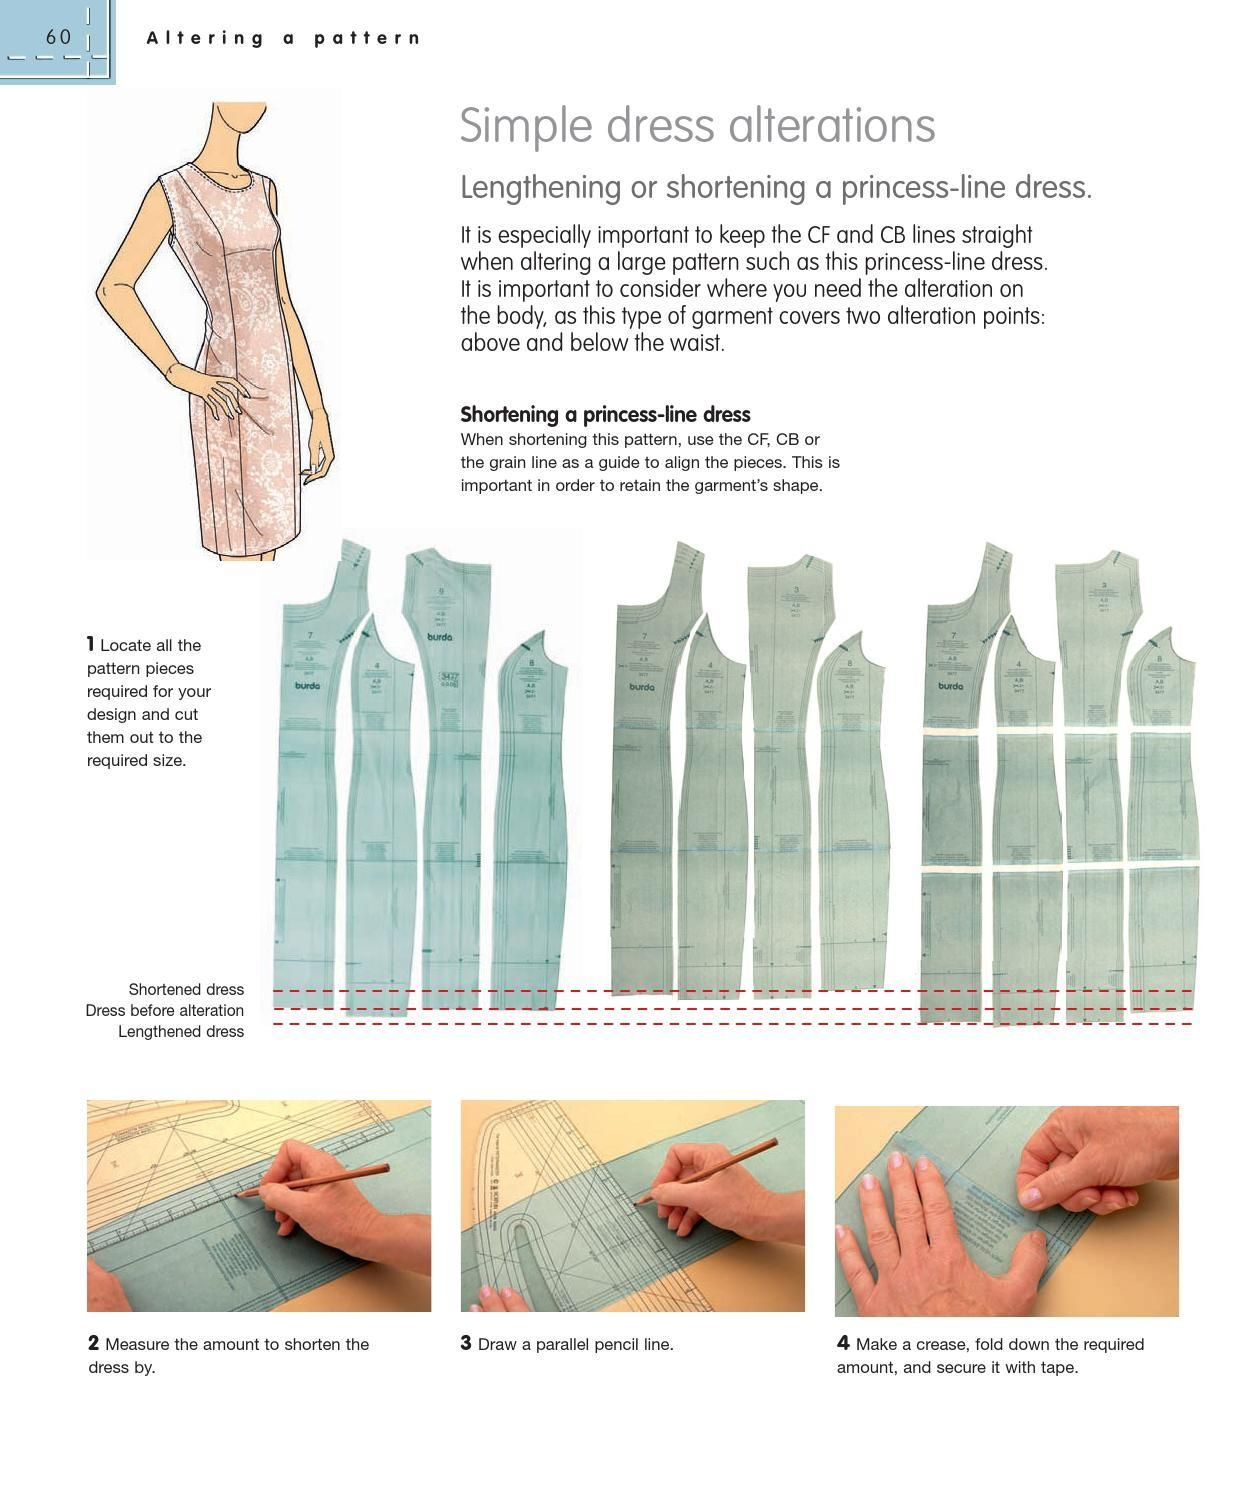 Clippedonissuu from how to use adapt and design sewing patterns clippedonissuu from how to use adapt and design sewing patterns jeuxipadfo Choice Image